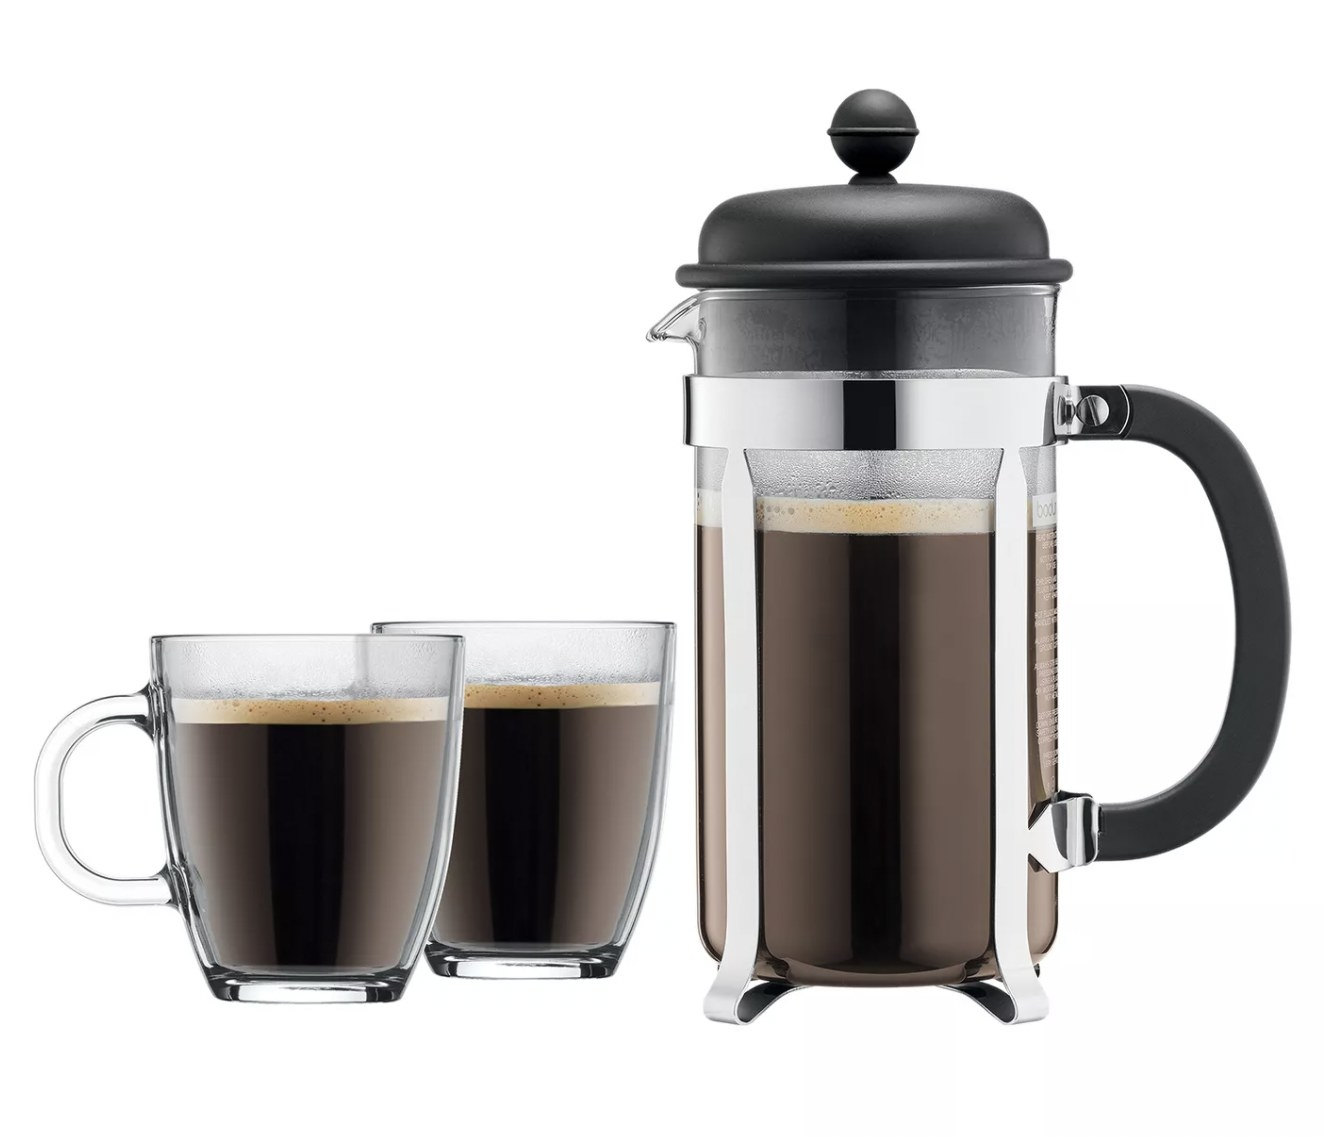 the French press with two glass mugs, all holding coffee